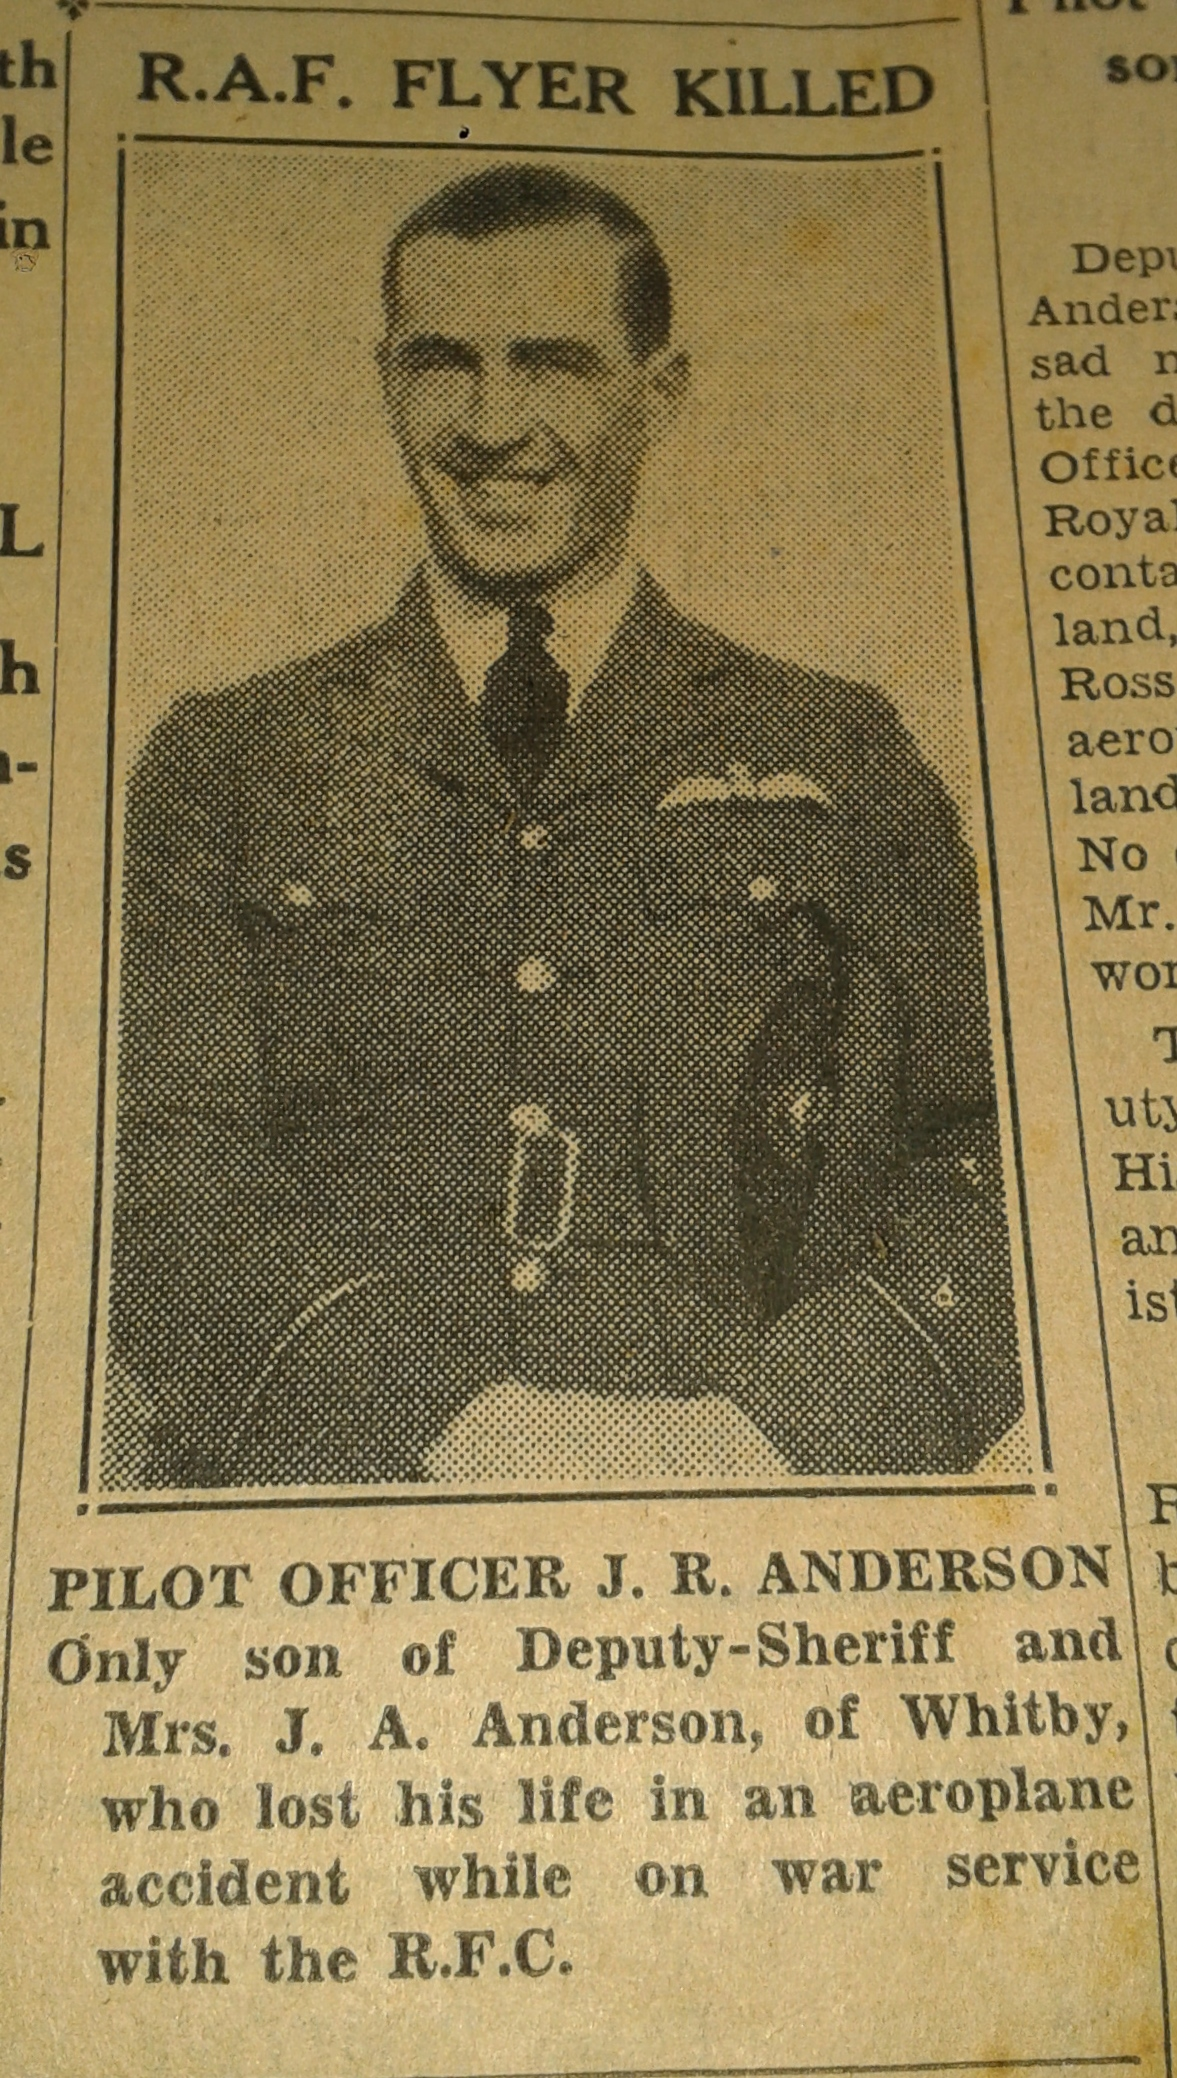 Newspaper Clipping– SOURCE: Whitby Gazette and Chronicle - 25 Oct 1939